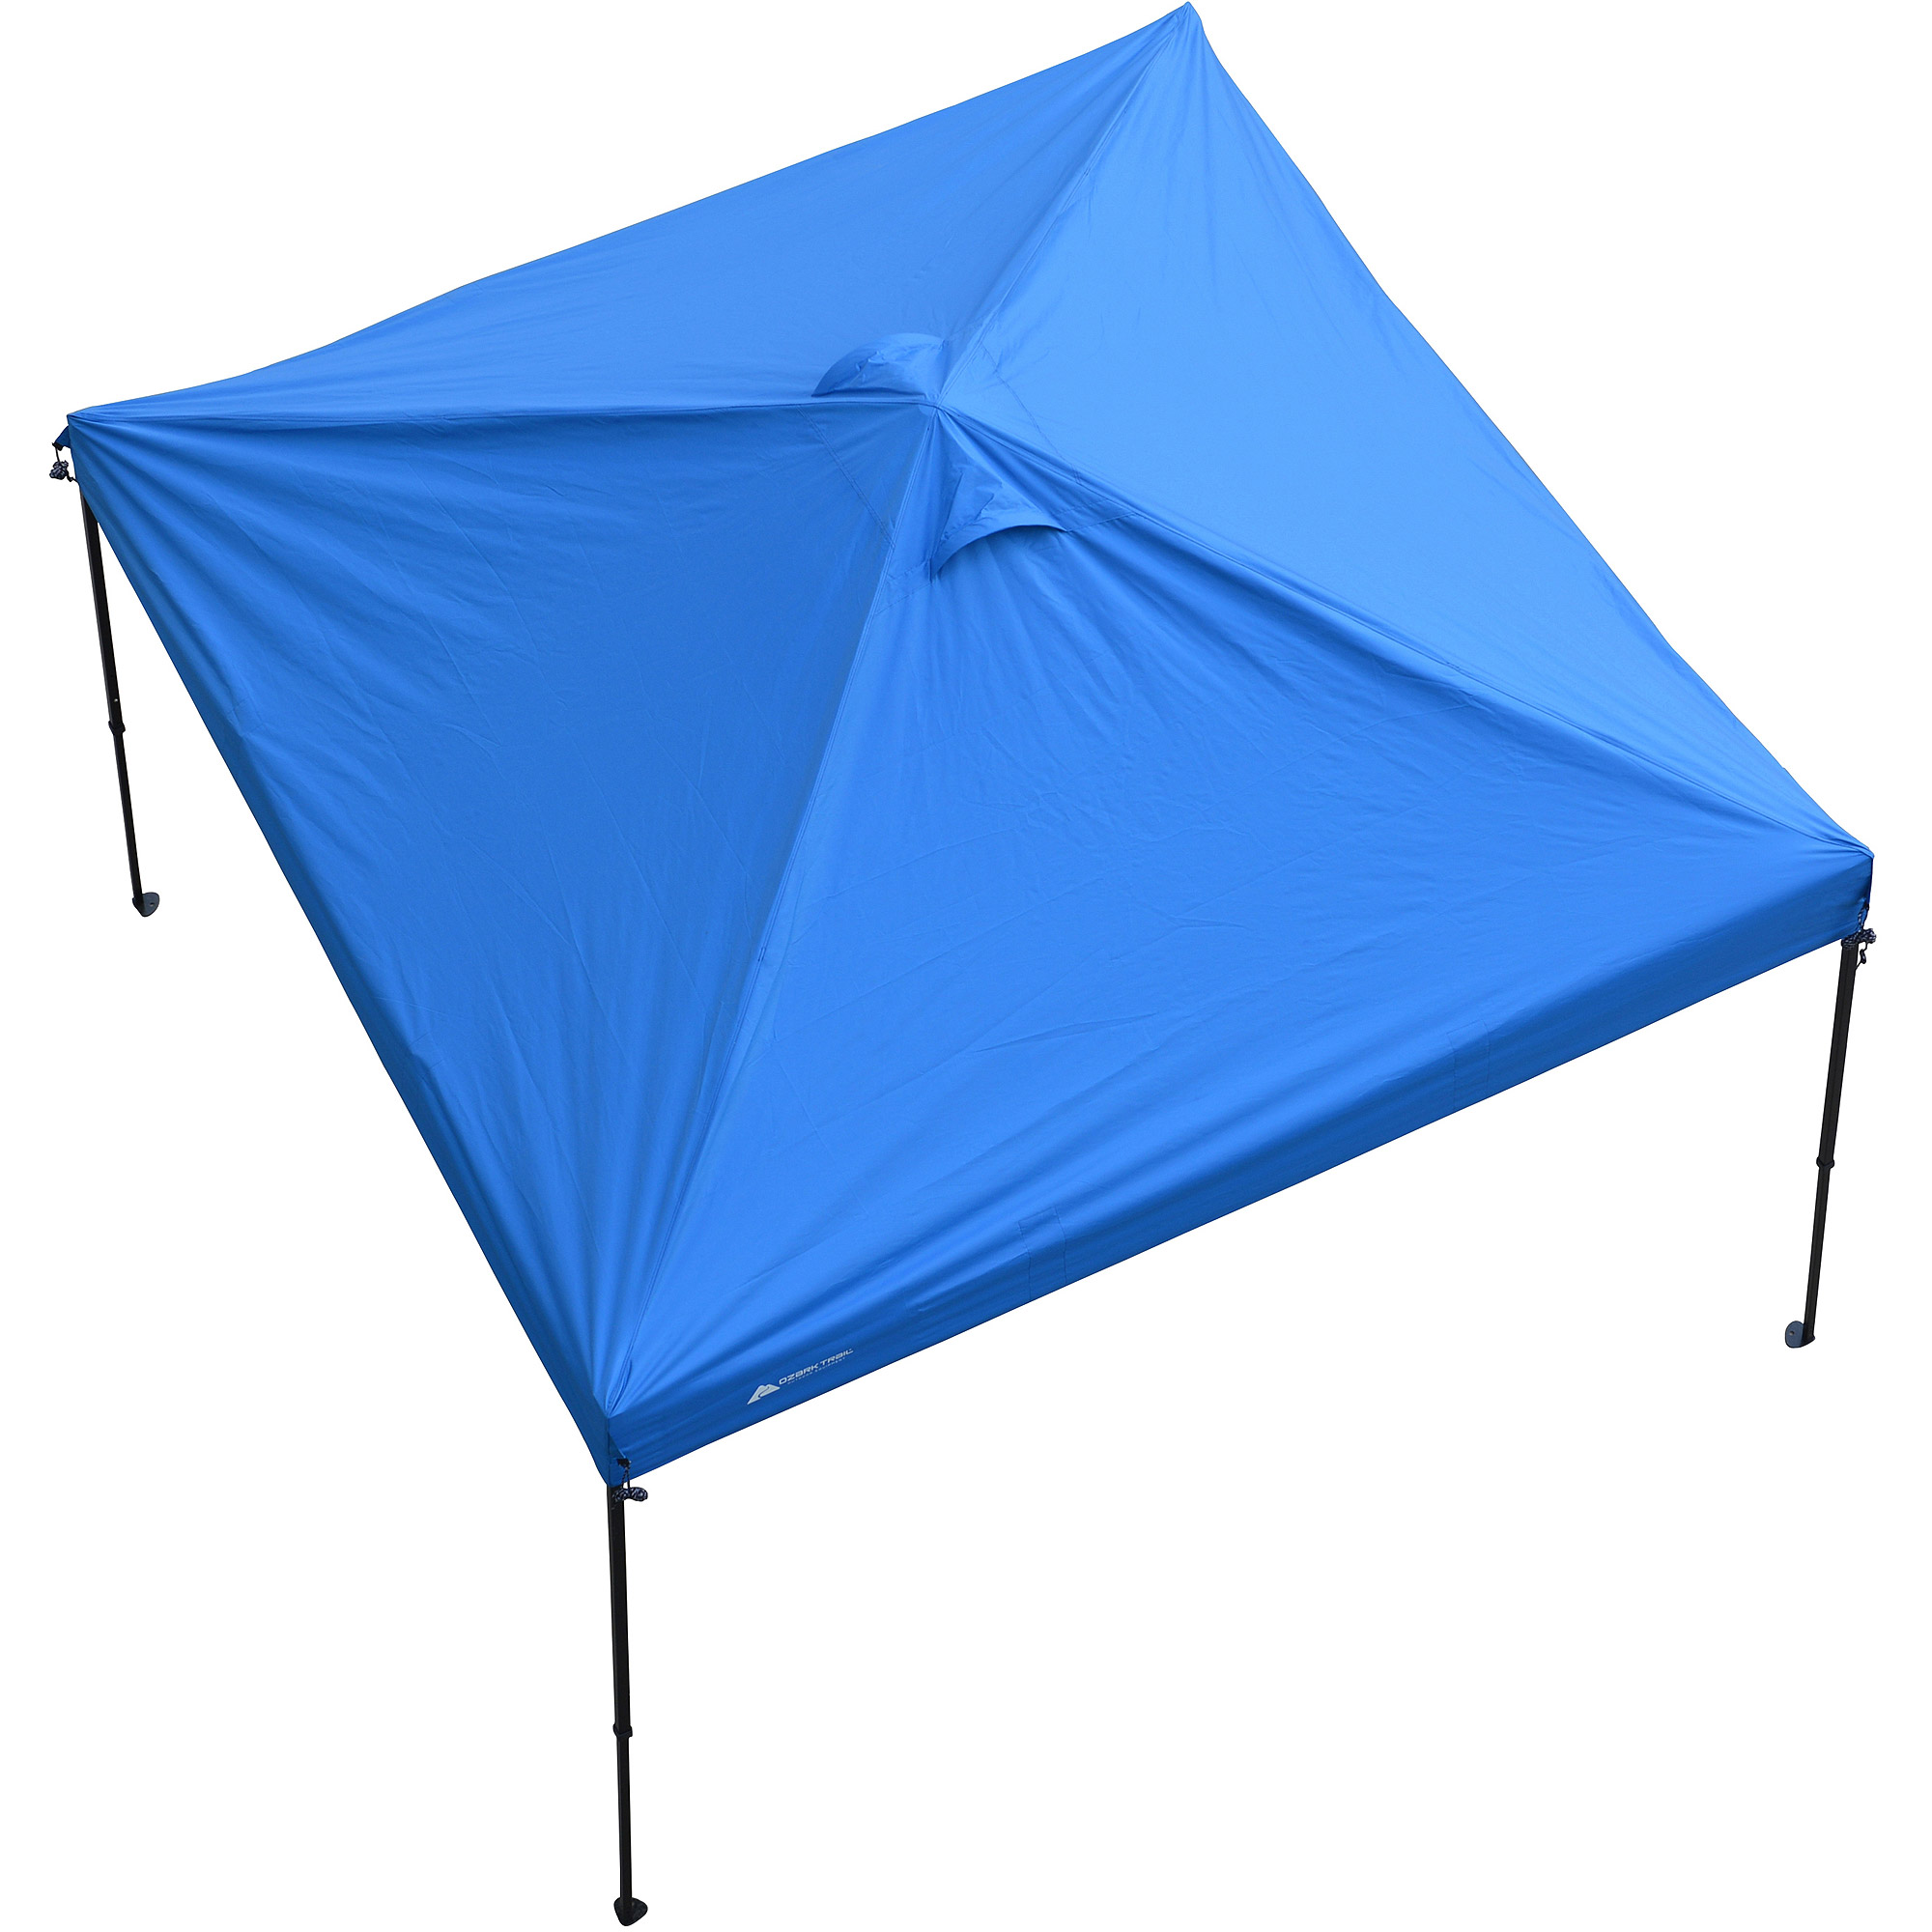 Ozark Trail 10' x 10' Gazebo Top for Tailgating or Sports Events, Blue